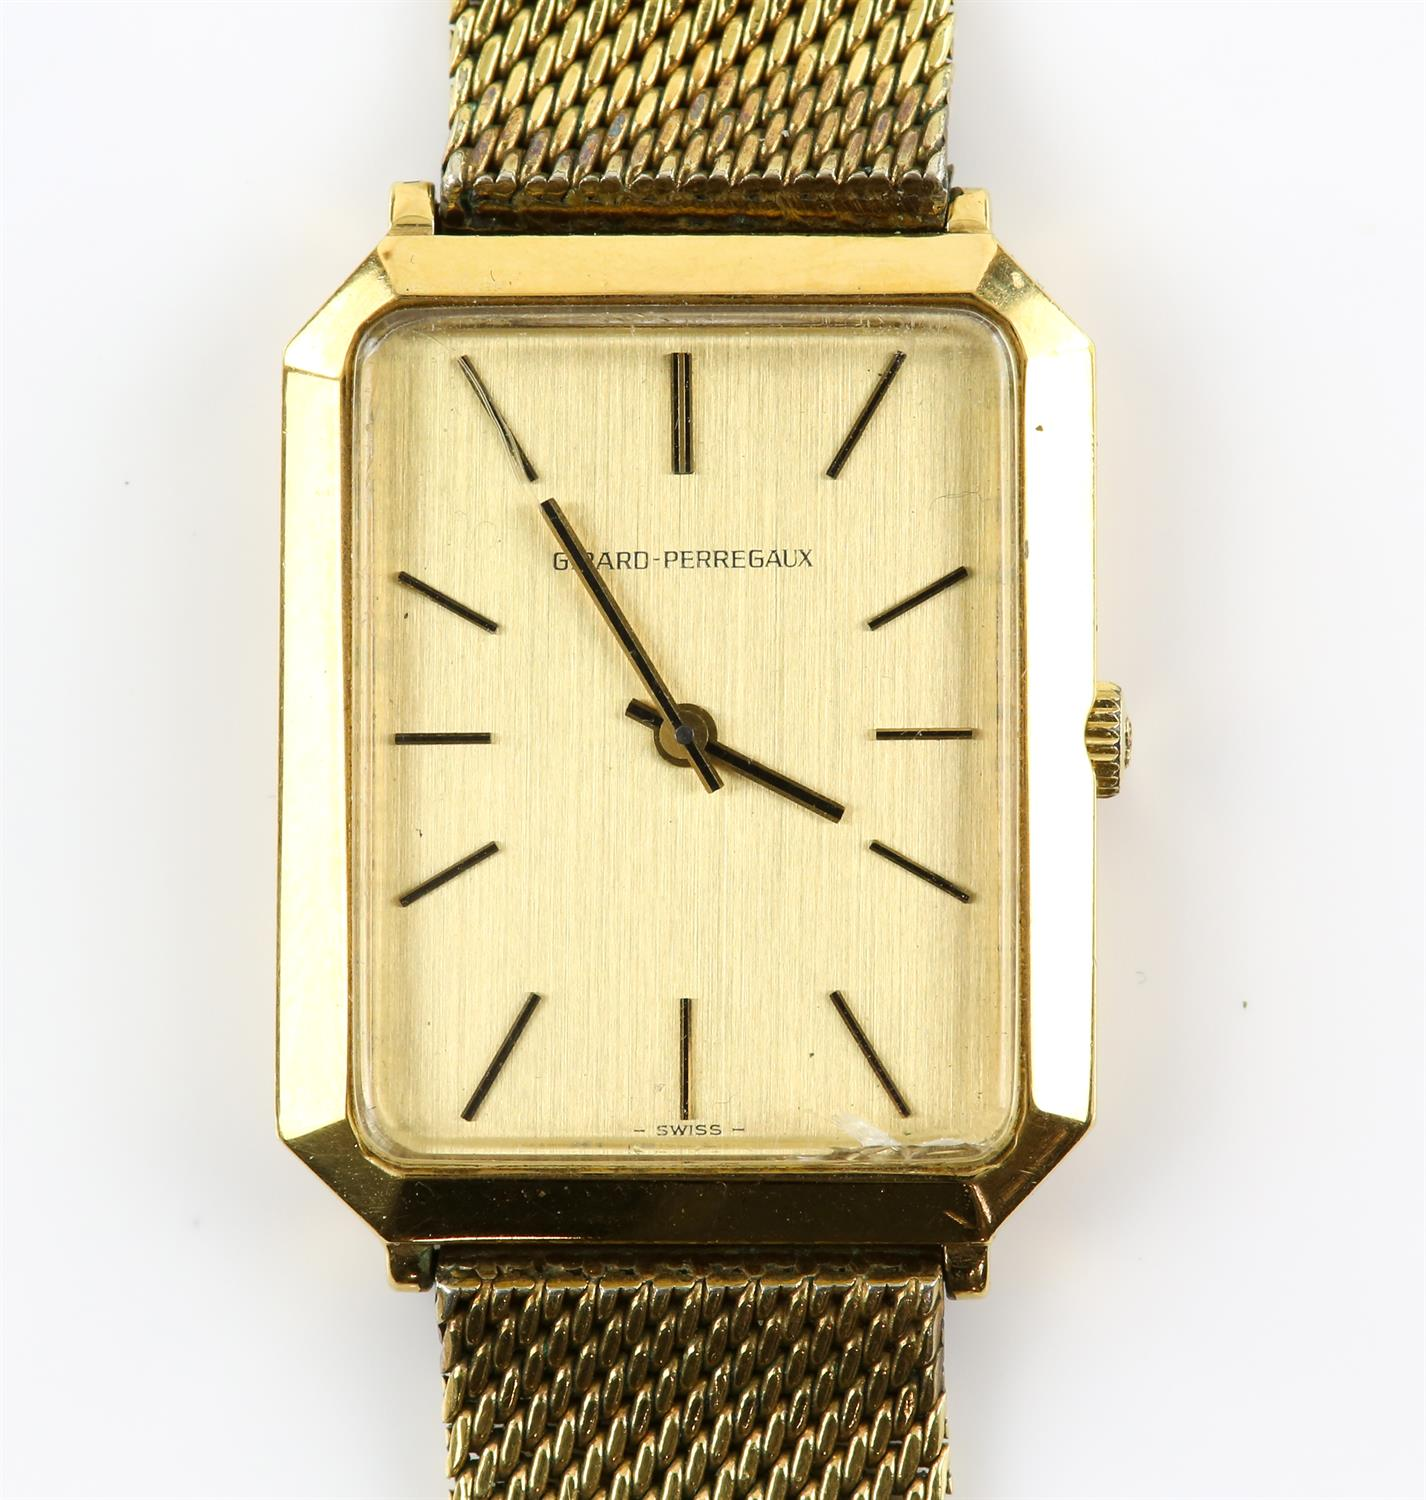 Girad-Perregaux A gentleman's wrist watch, the rectangular signed brushed gold signed dial case